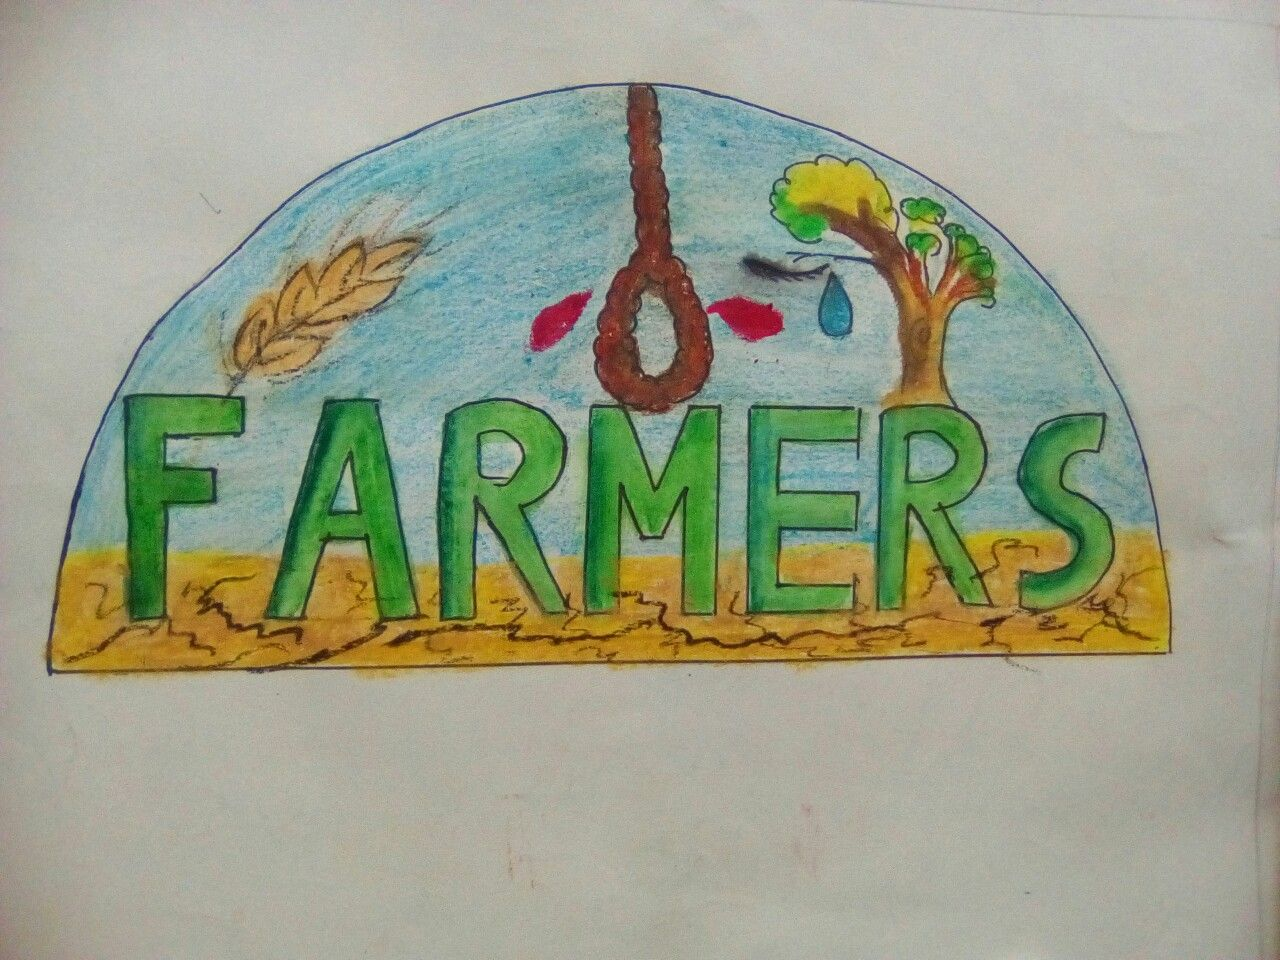 Farmers lettering Intermediate and elementary grade exams